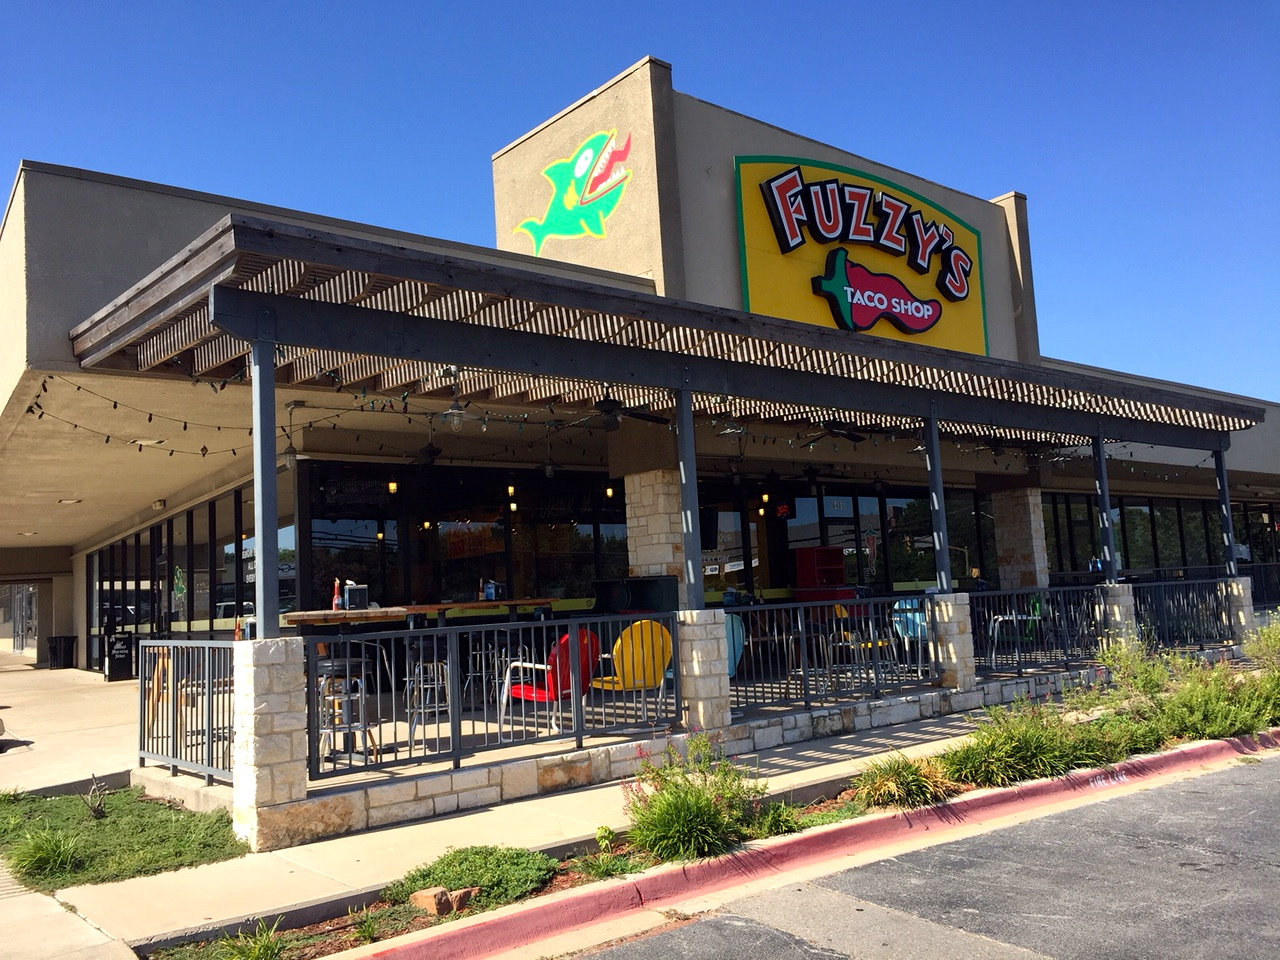 Fuzzy's is closing and Dream Cafe is opening in its place: Photo by Brittany Nunn